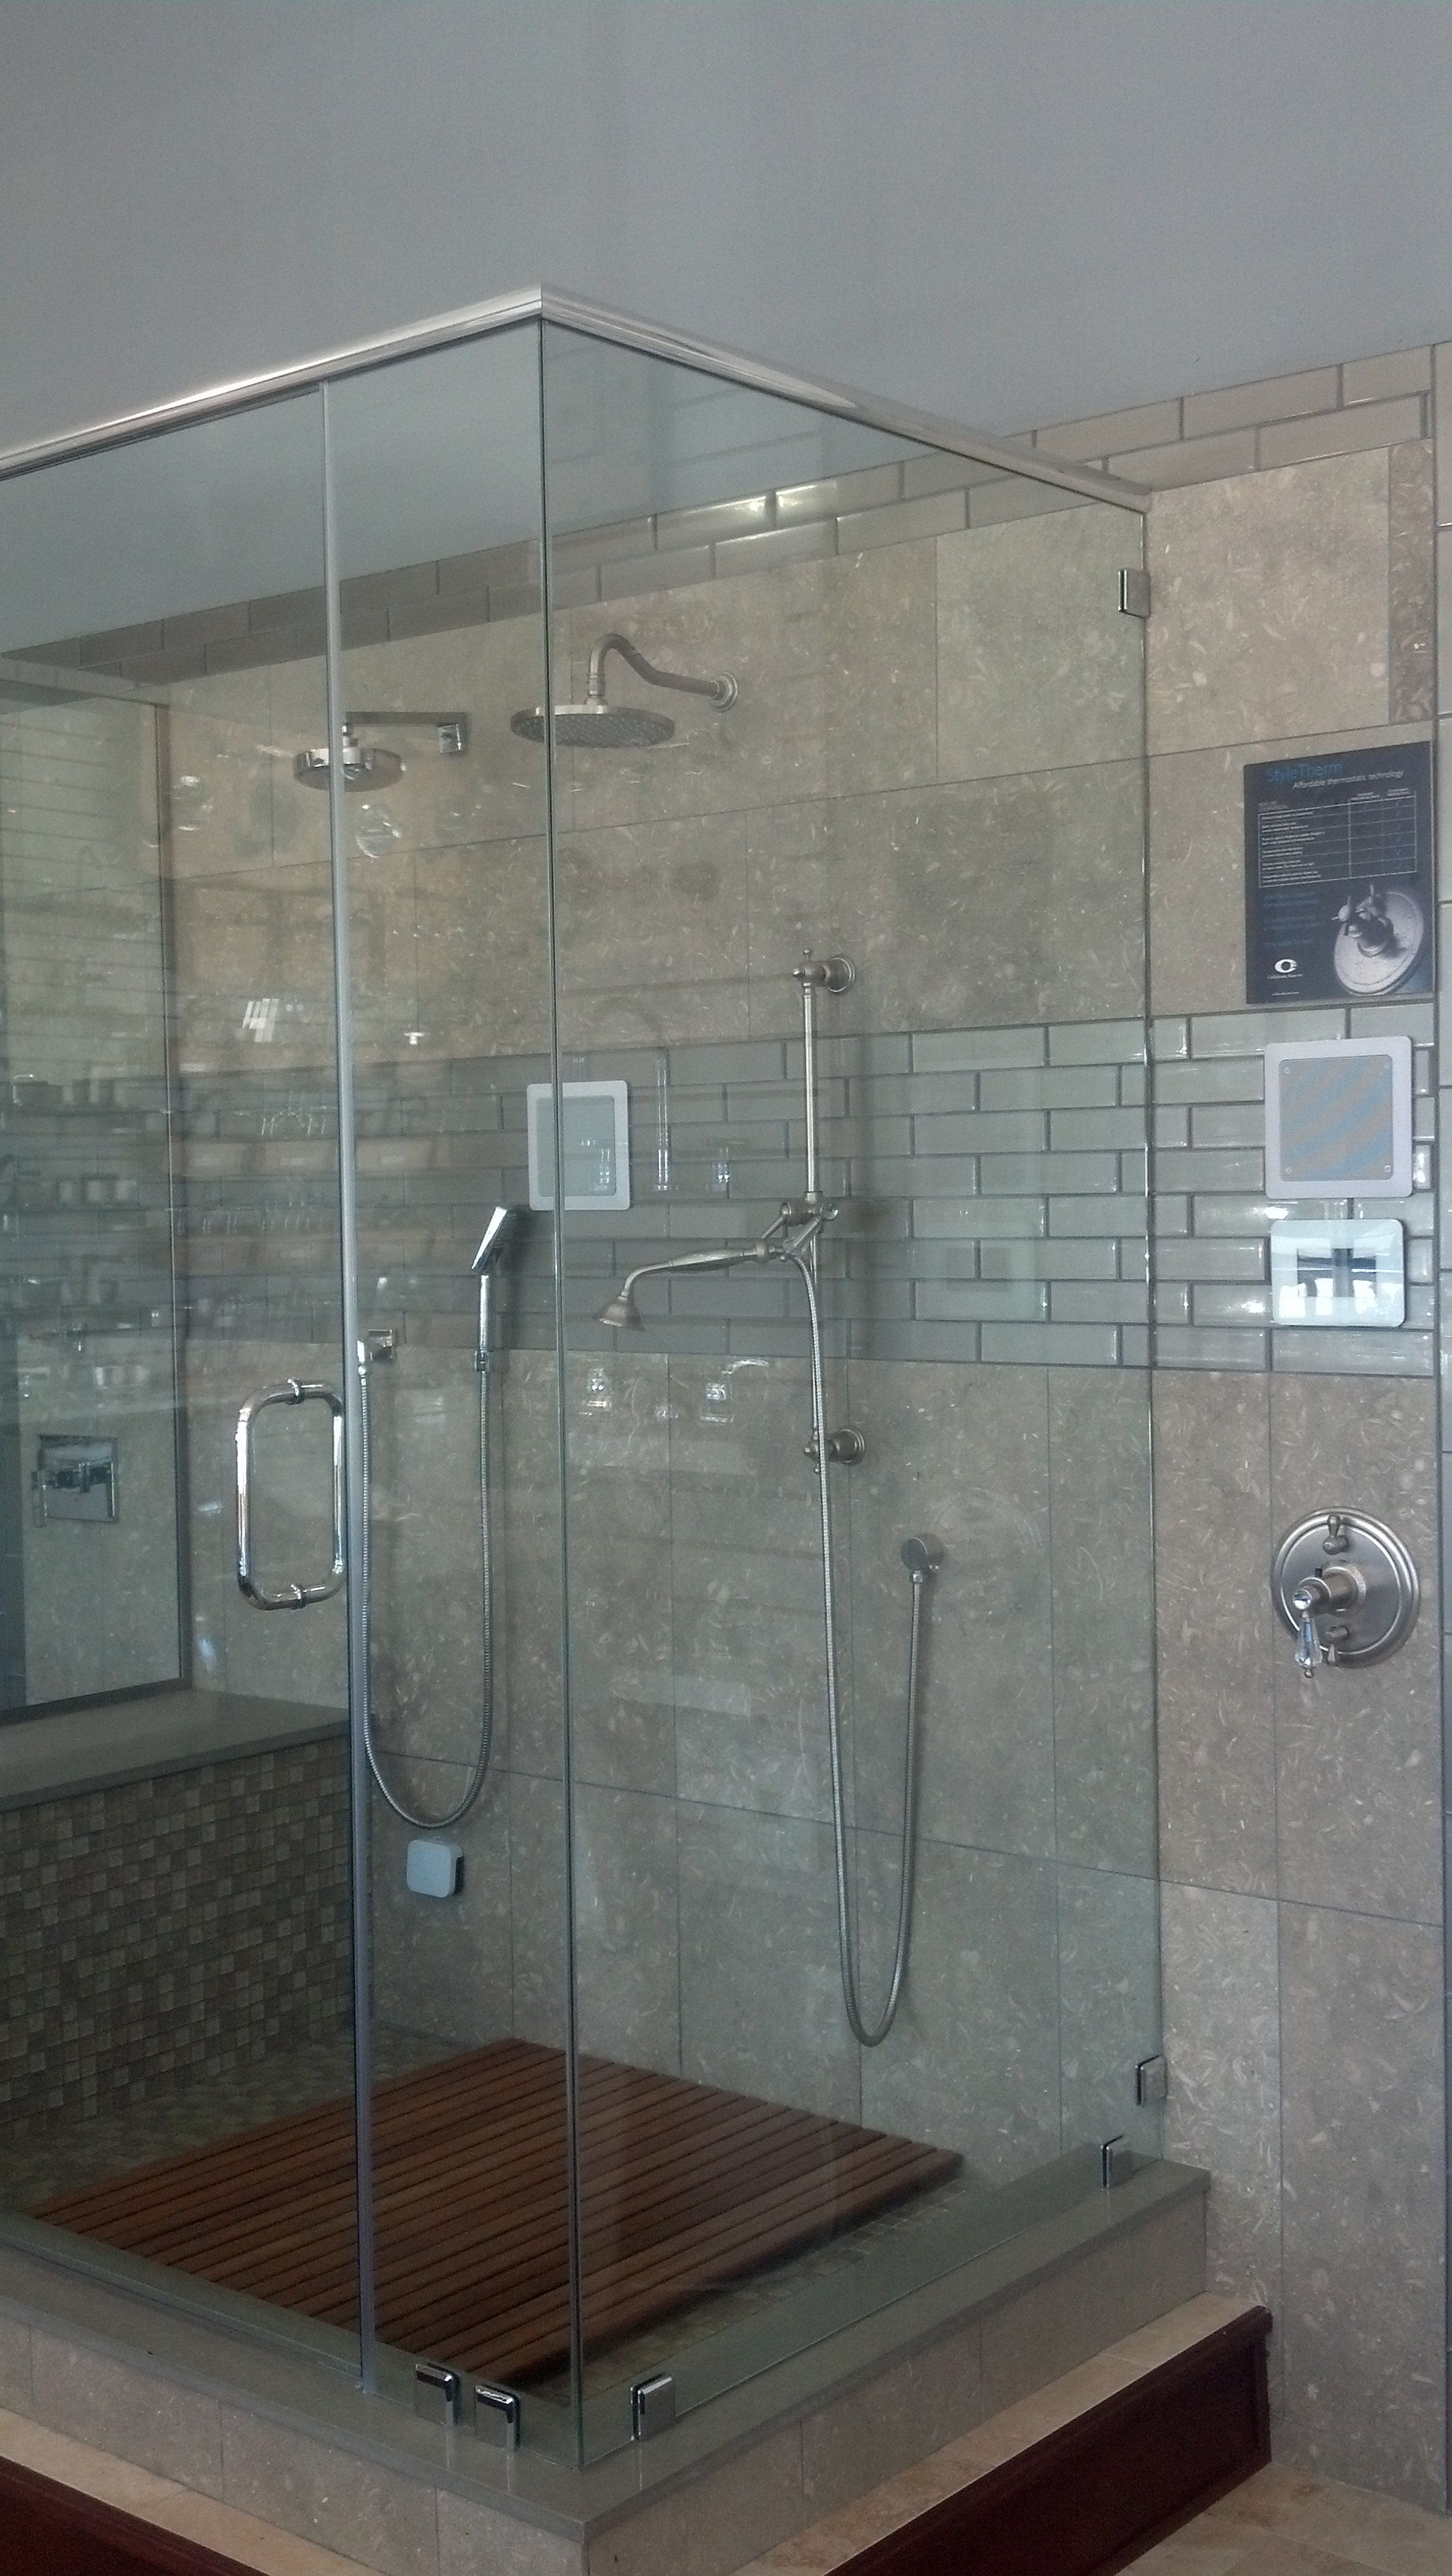 Home steam shower home steamtherapy blog mr steam - All you need to know about steam showers ...